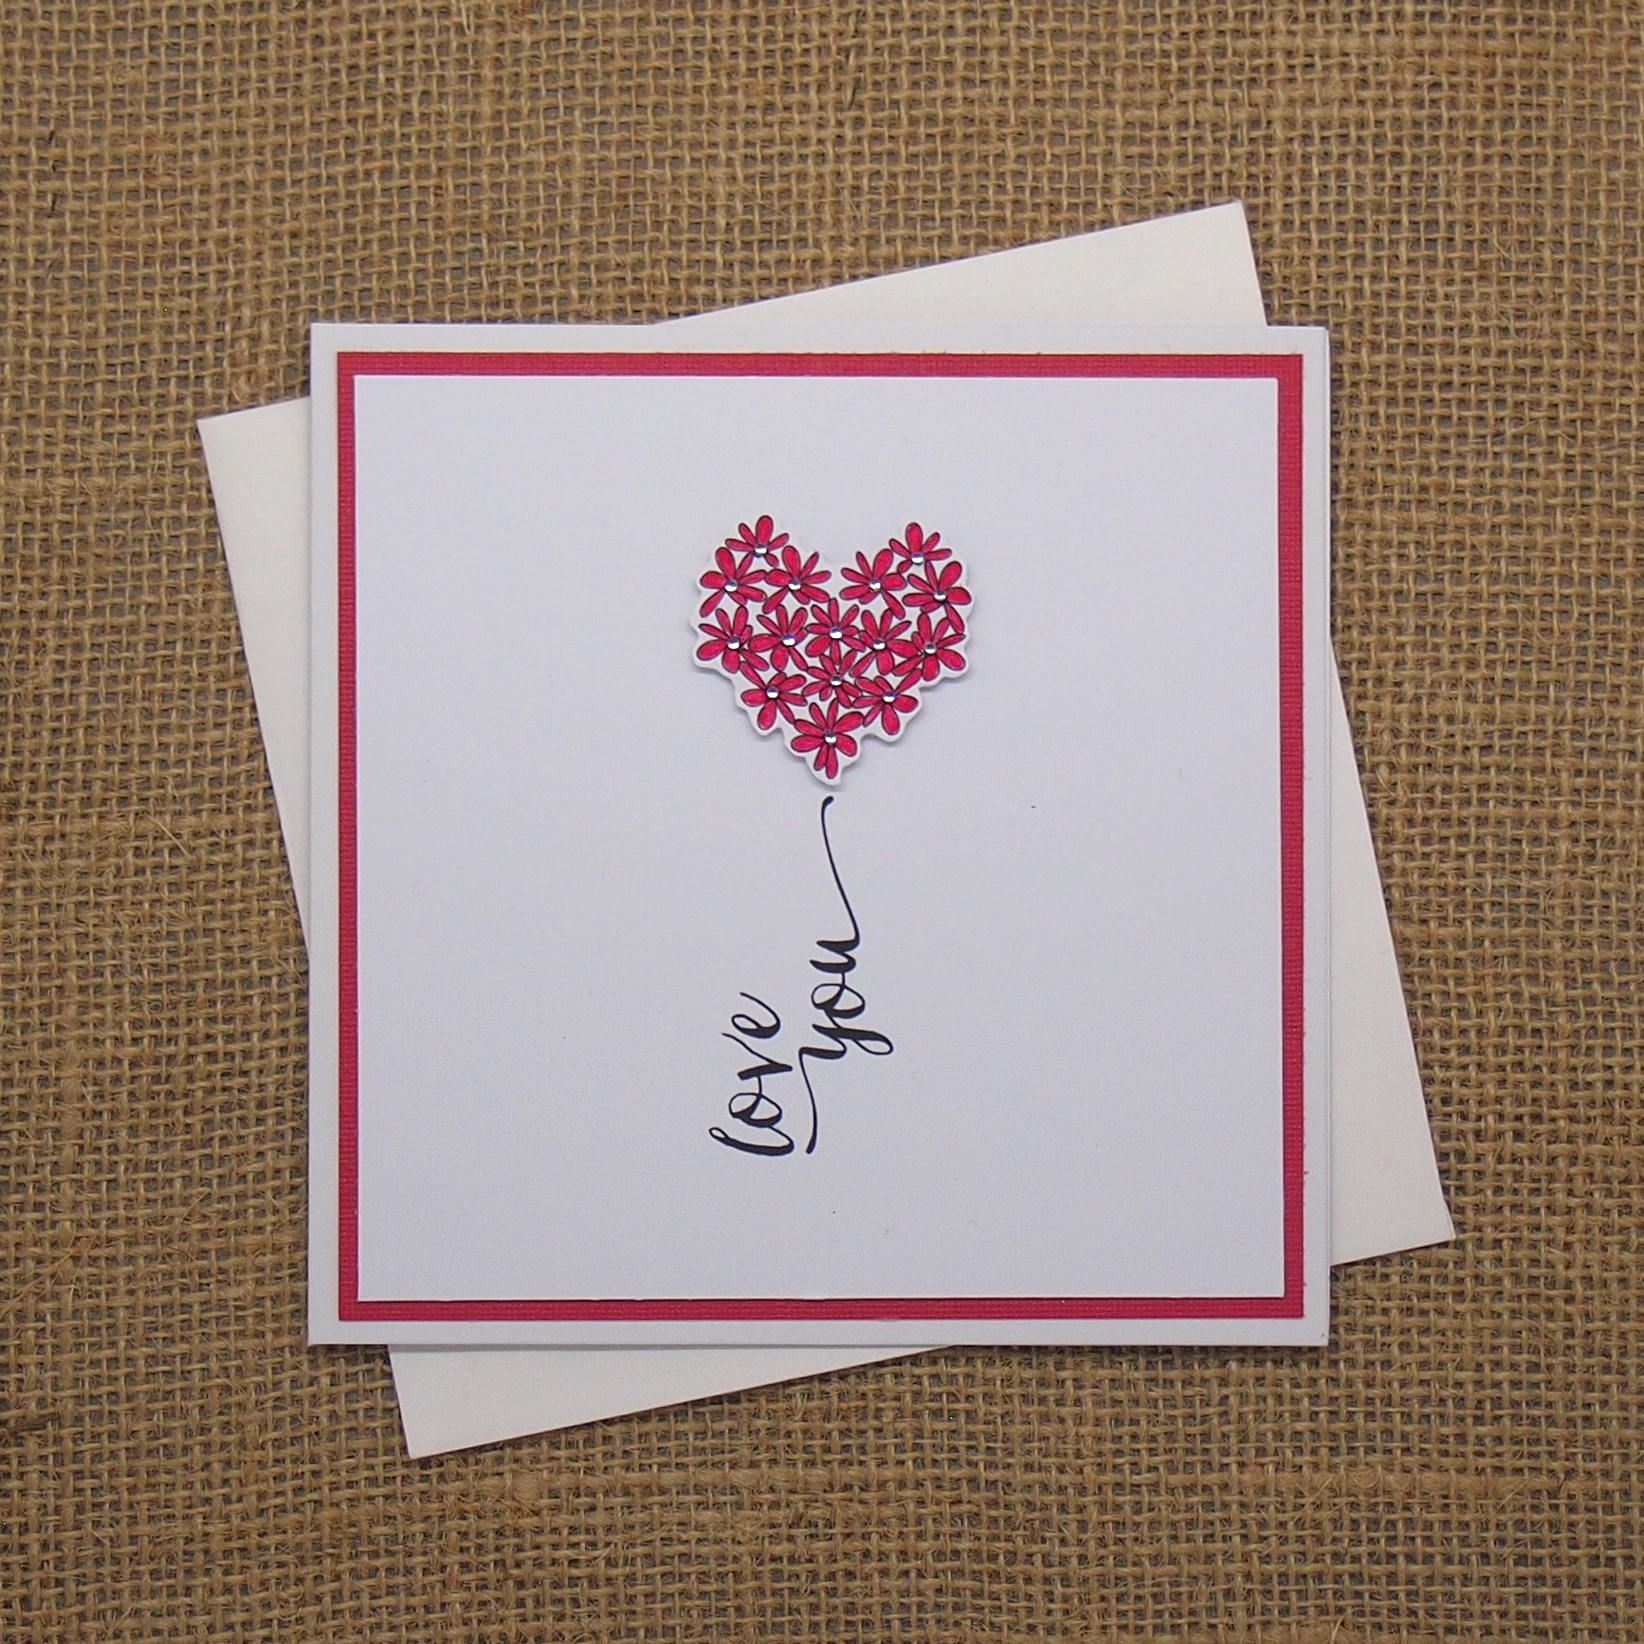 Handmade anniversary card with a heart of flowers and love you on